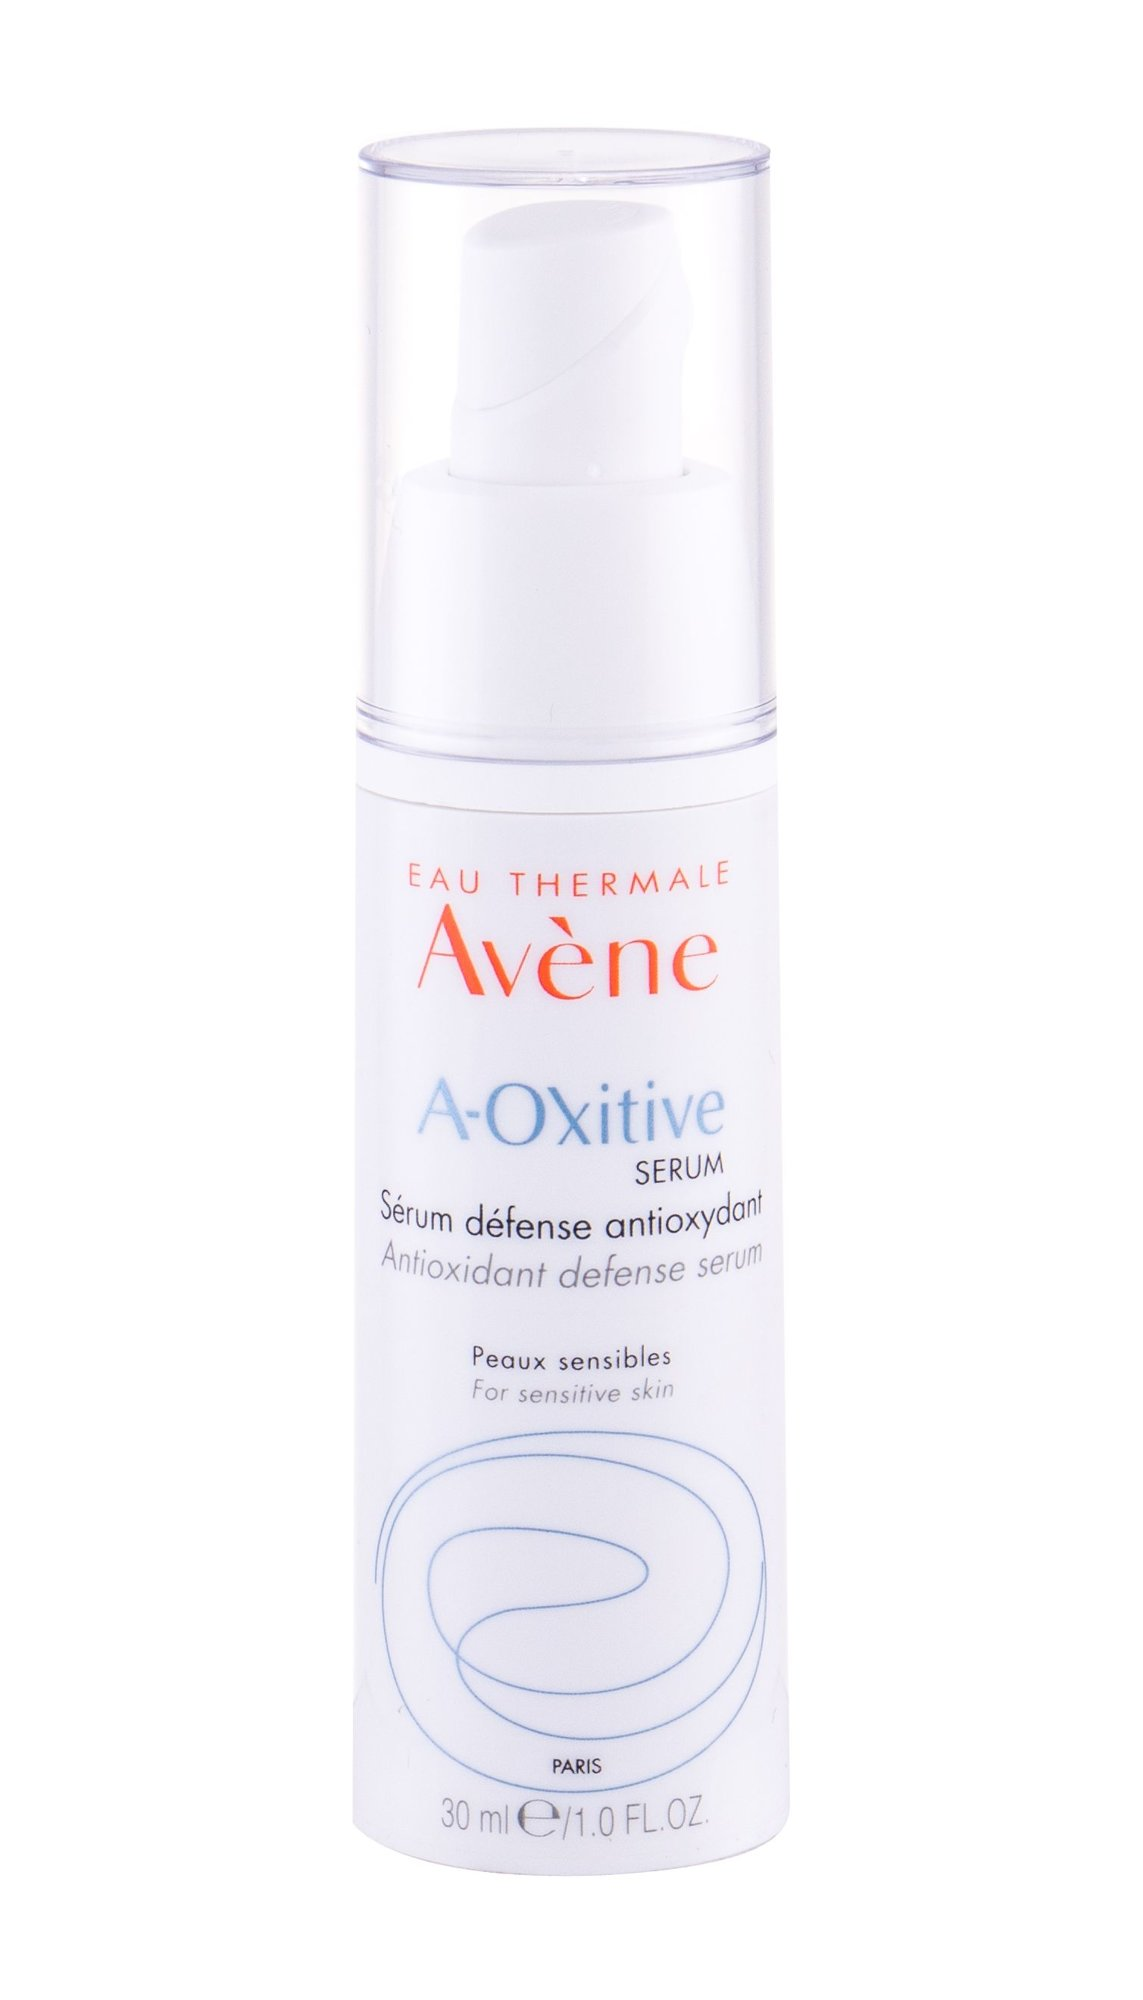 Avene A-Oxitive  Pleťové sérum, W, 30 ml